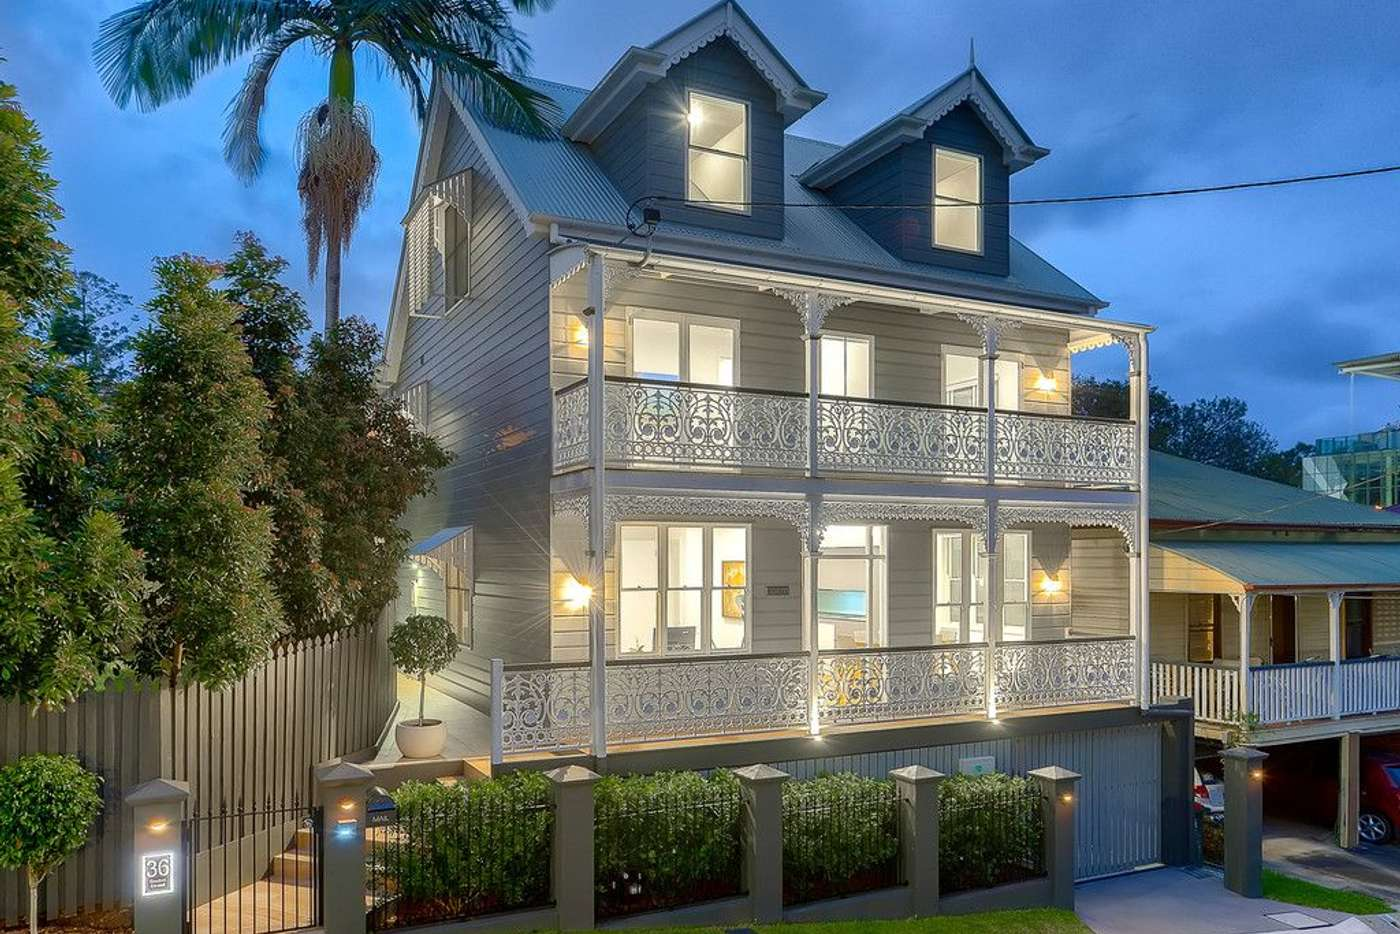 Main view of Homely house listing, 36 Sexton Street, Petrie Terrace QLD 4000